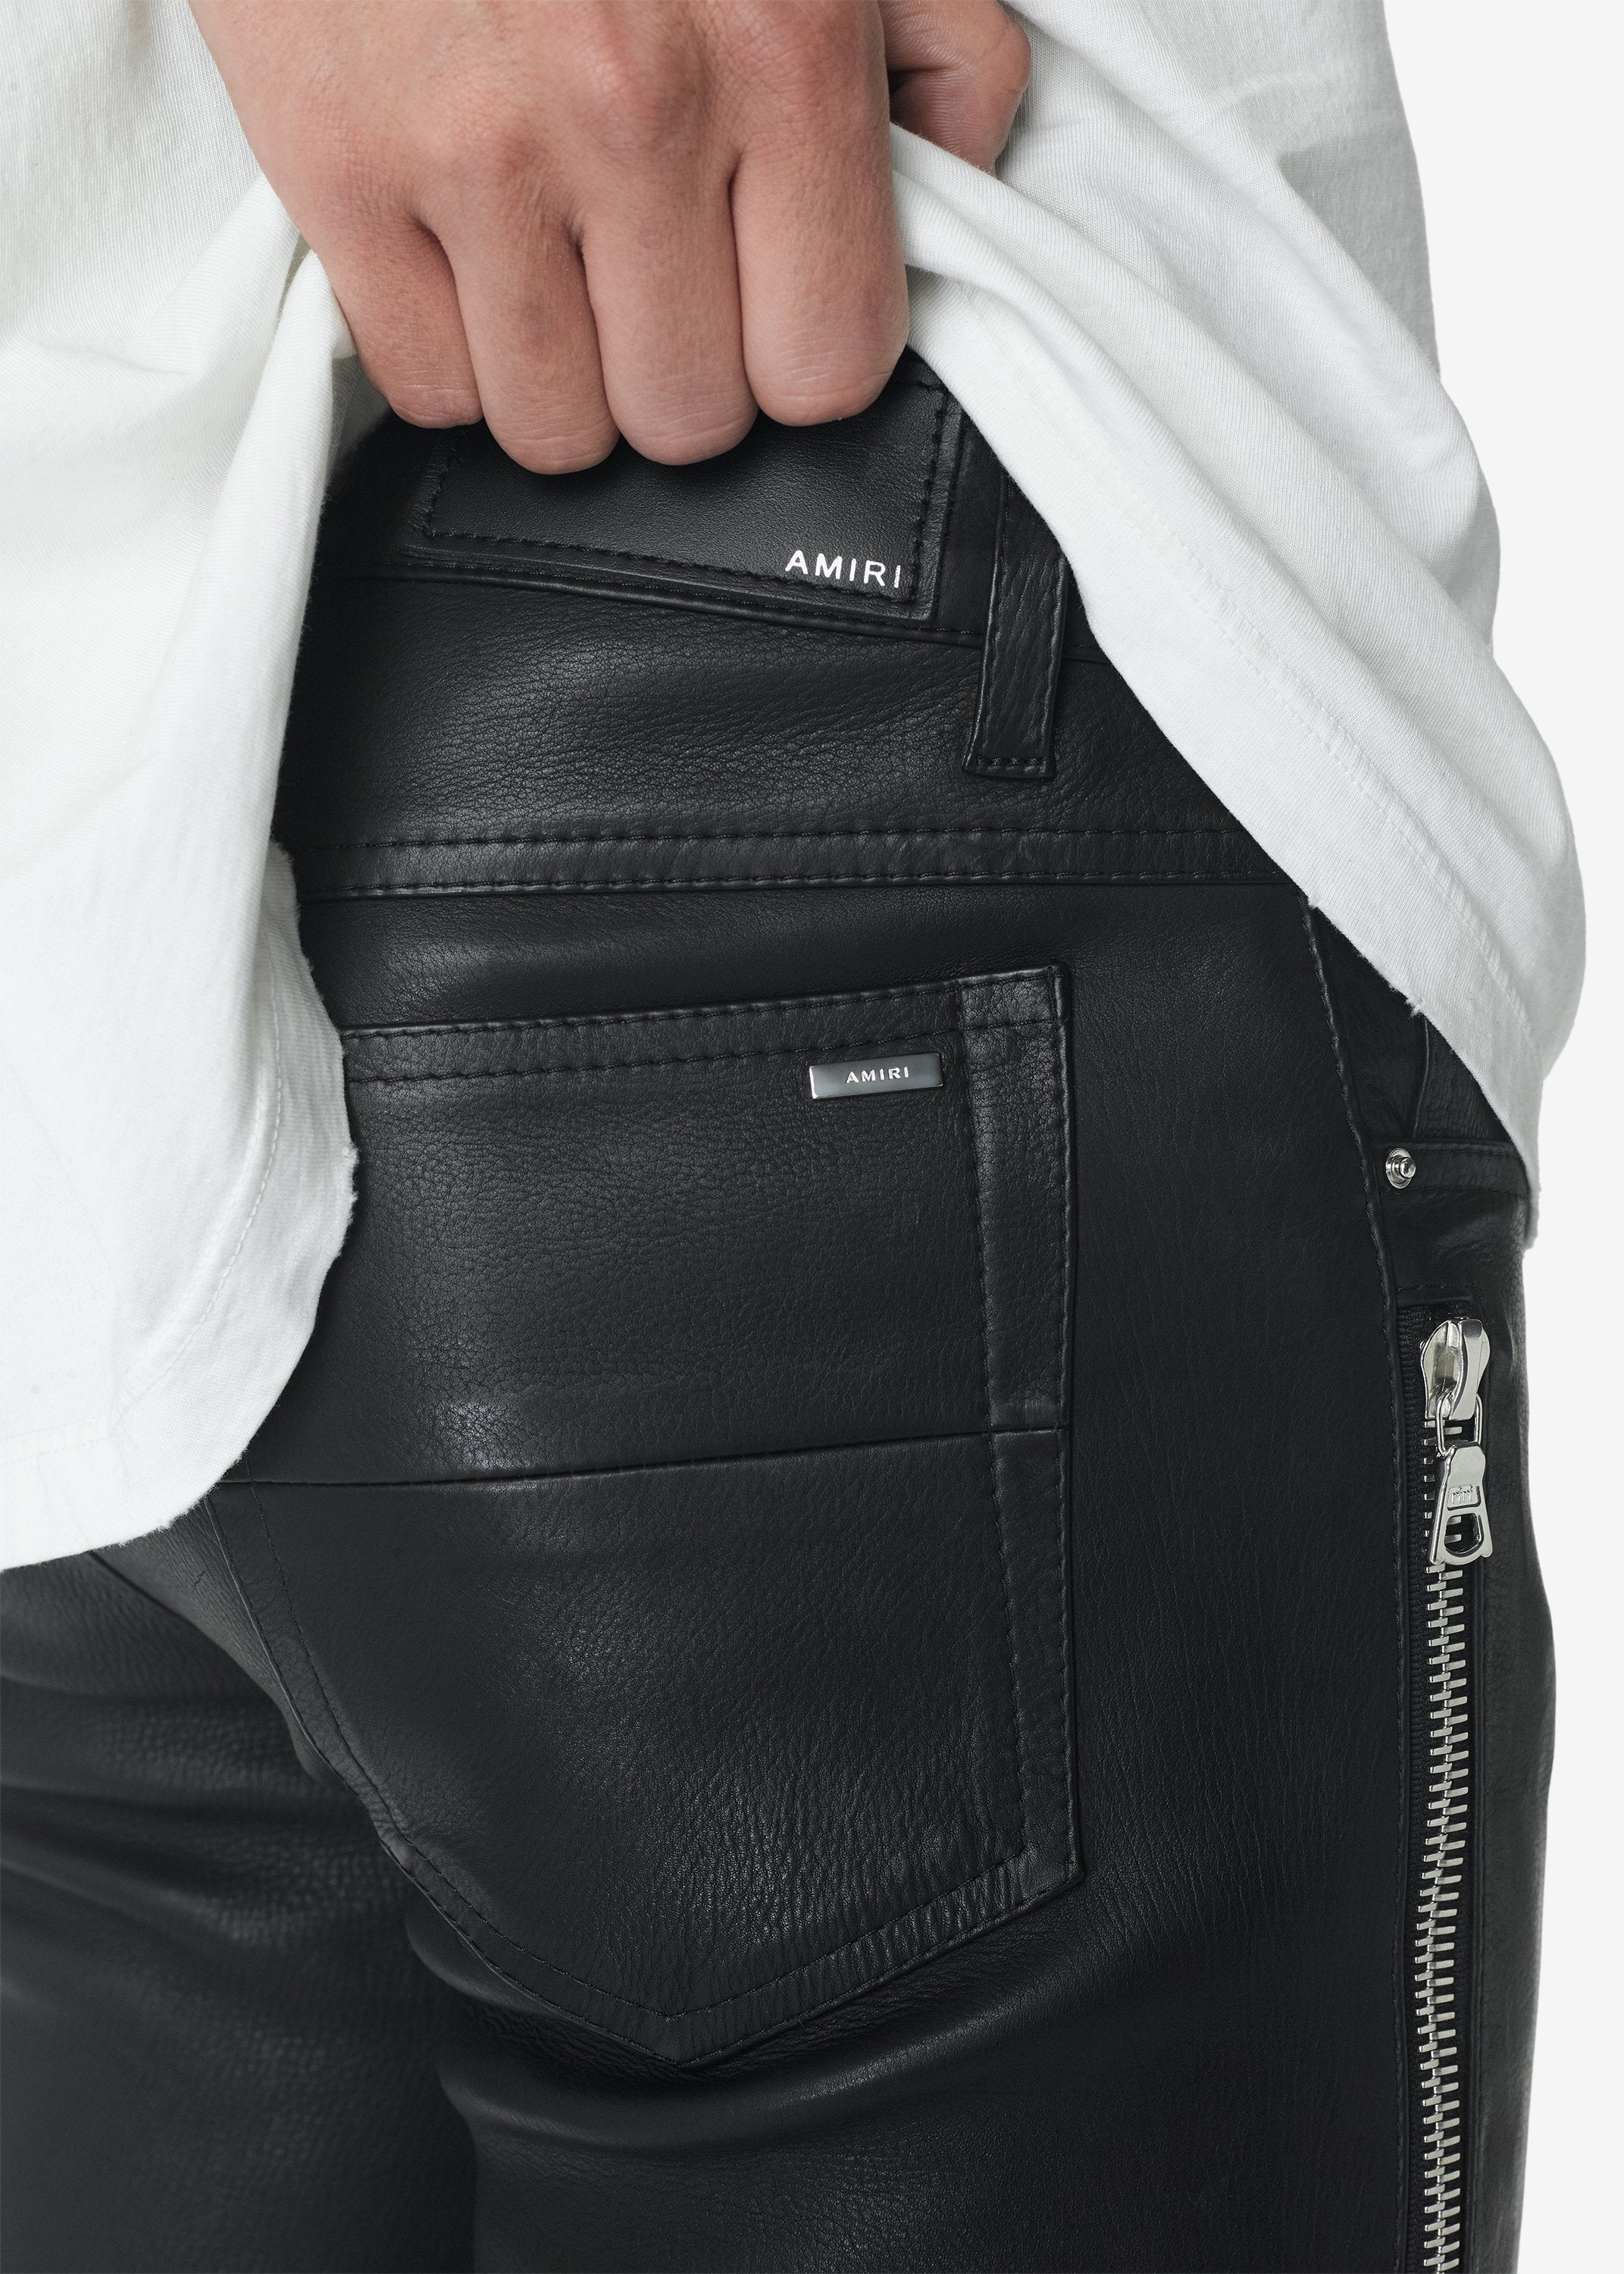 mx2-leather-pants-black-silver-image-9